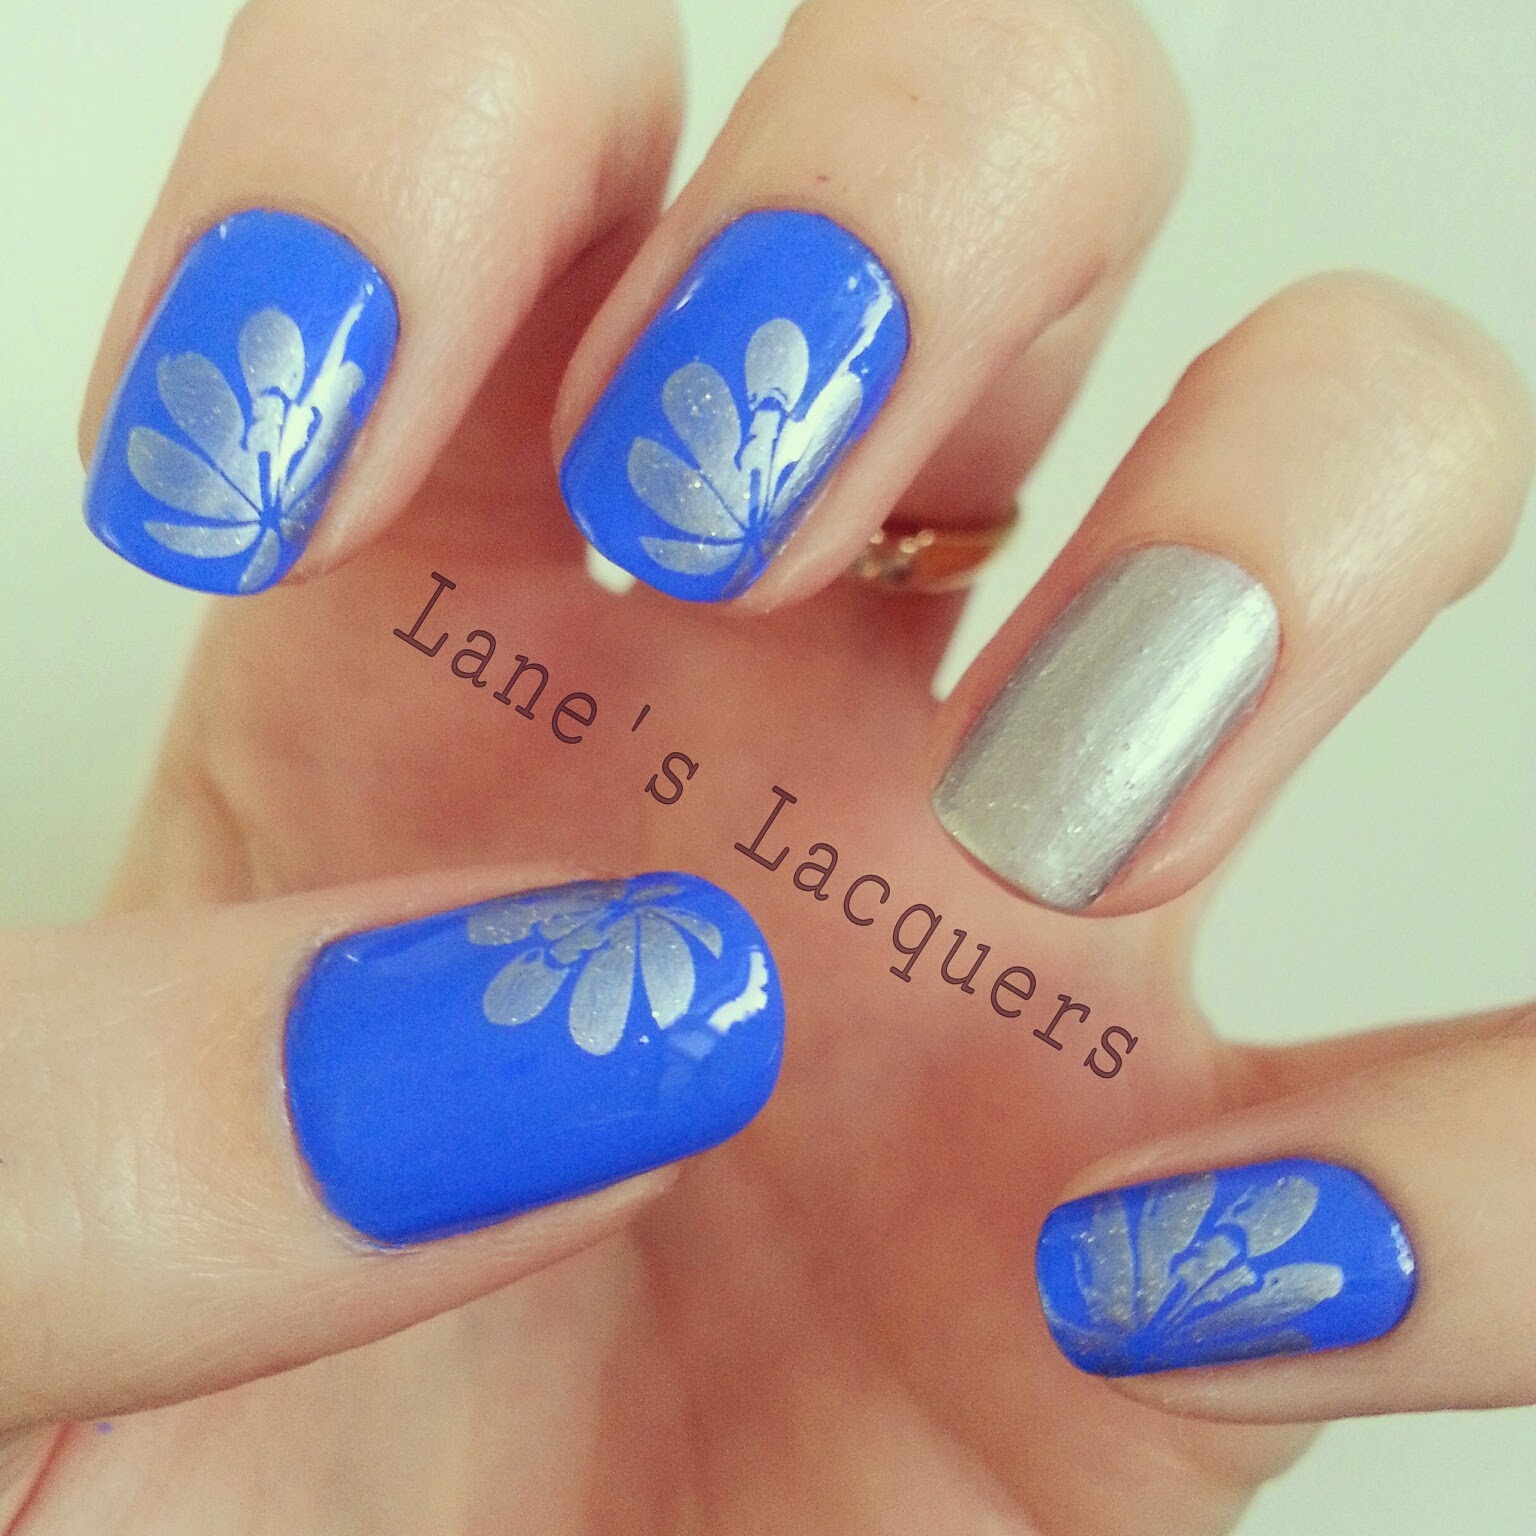 floral-nail-art-moyou-nails-107